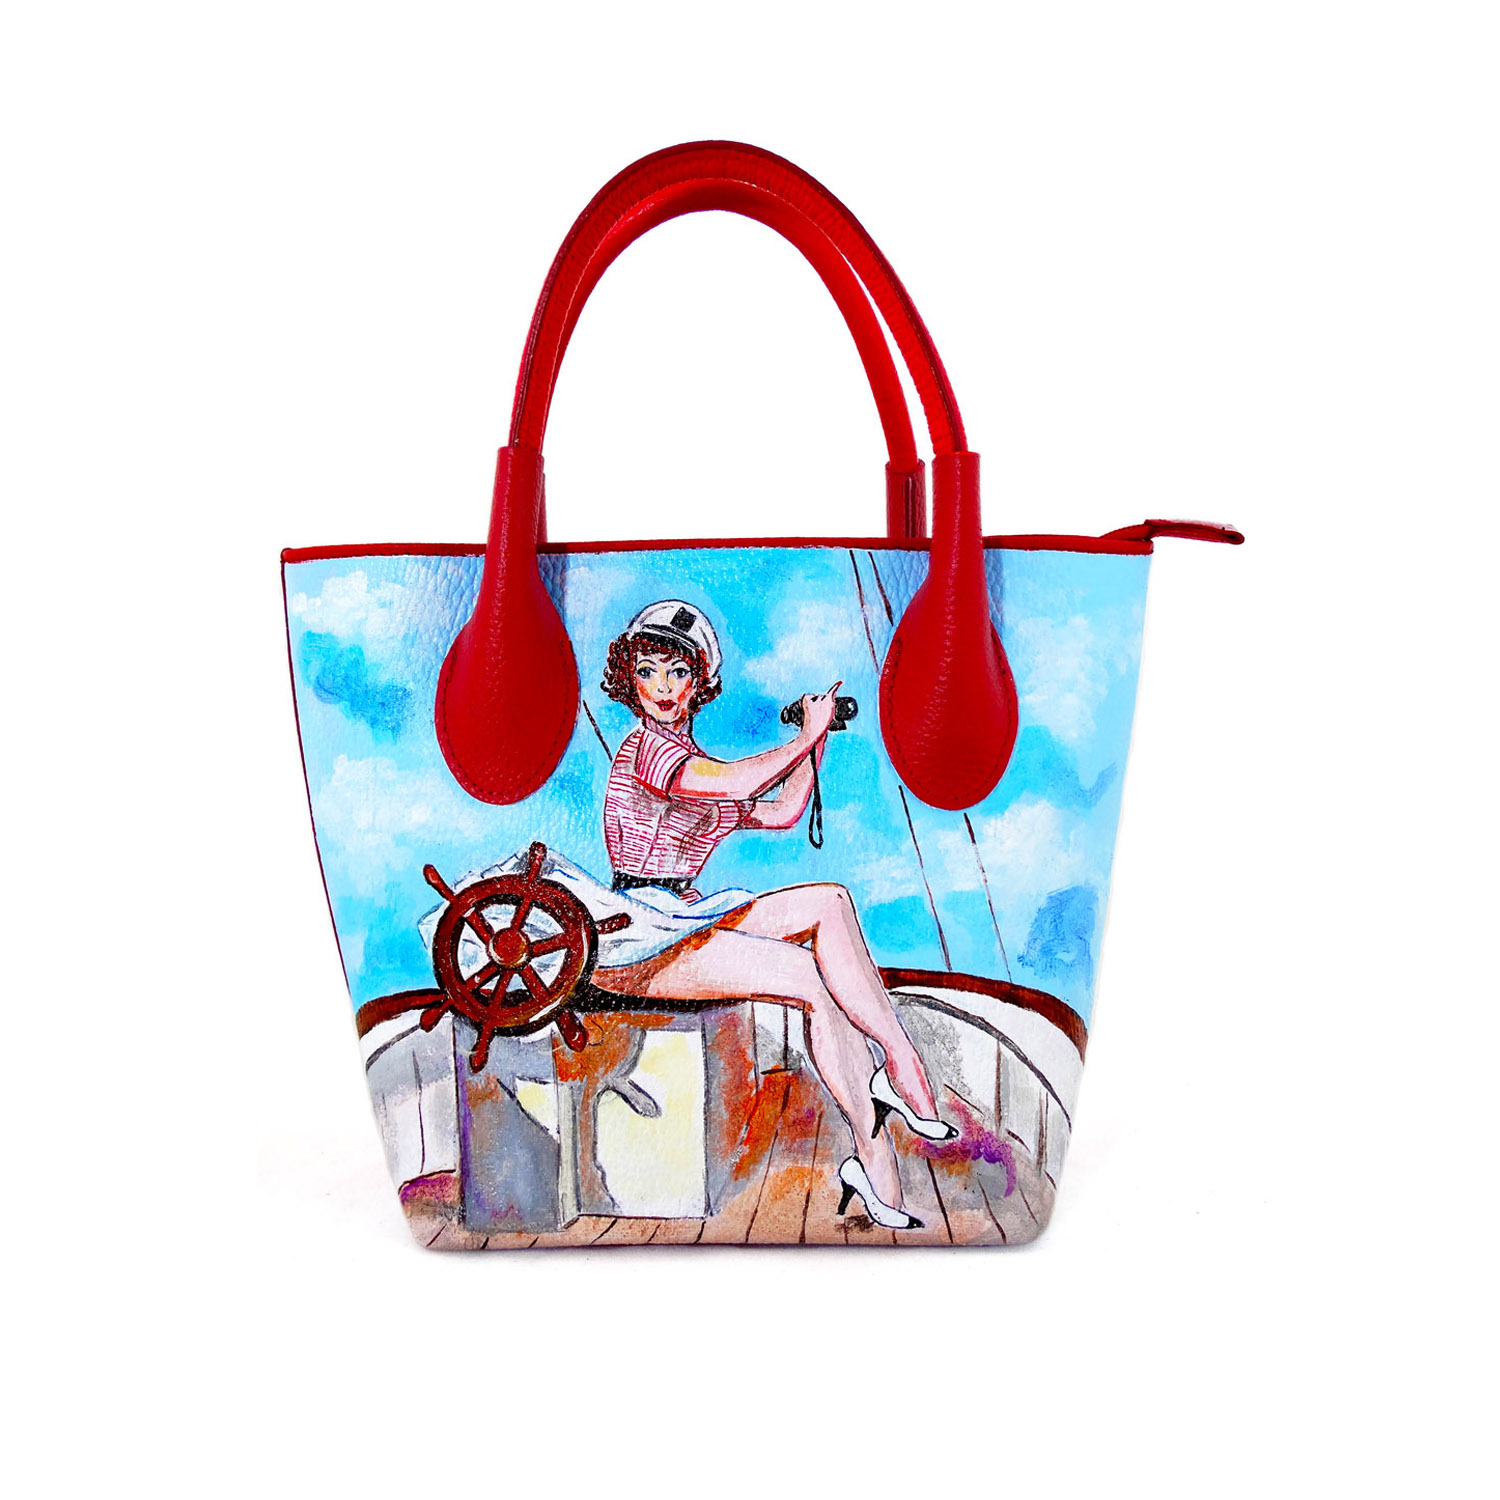 Hand-painted bag - Sailor girl